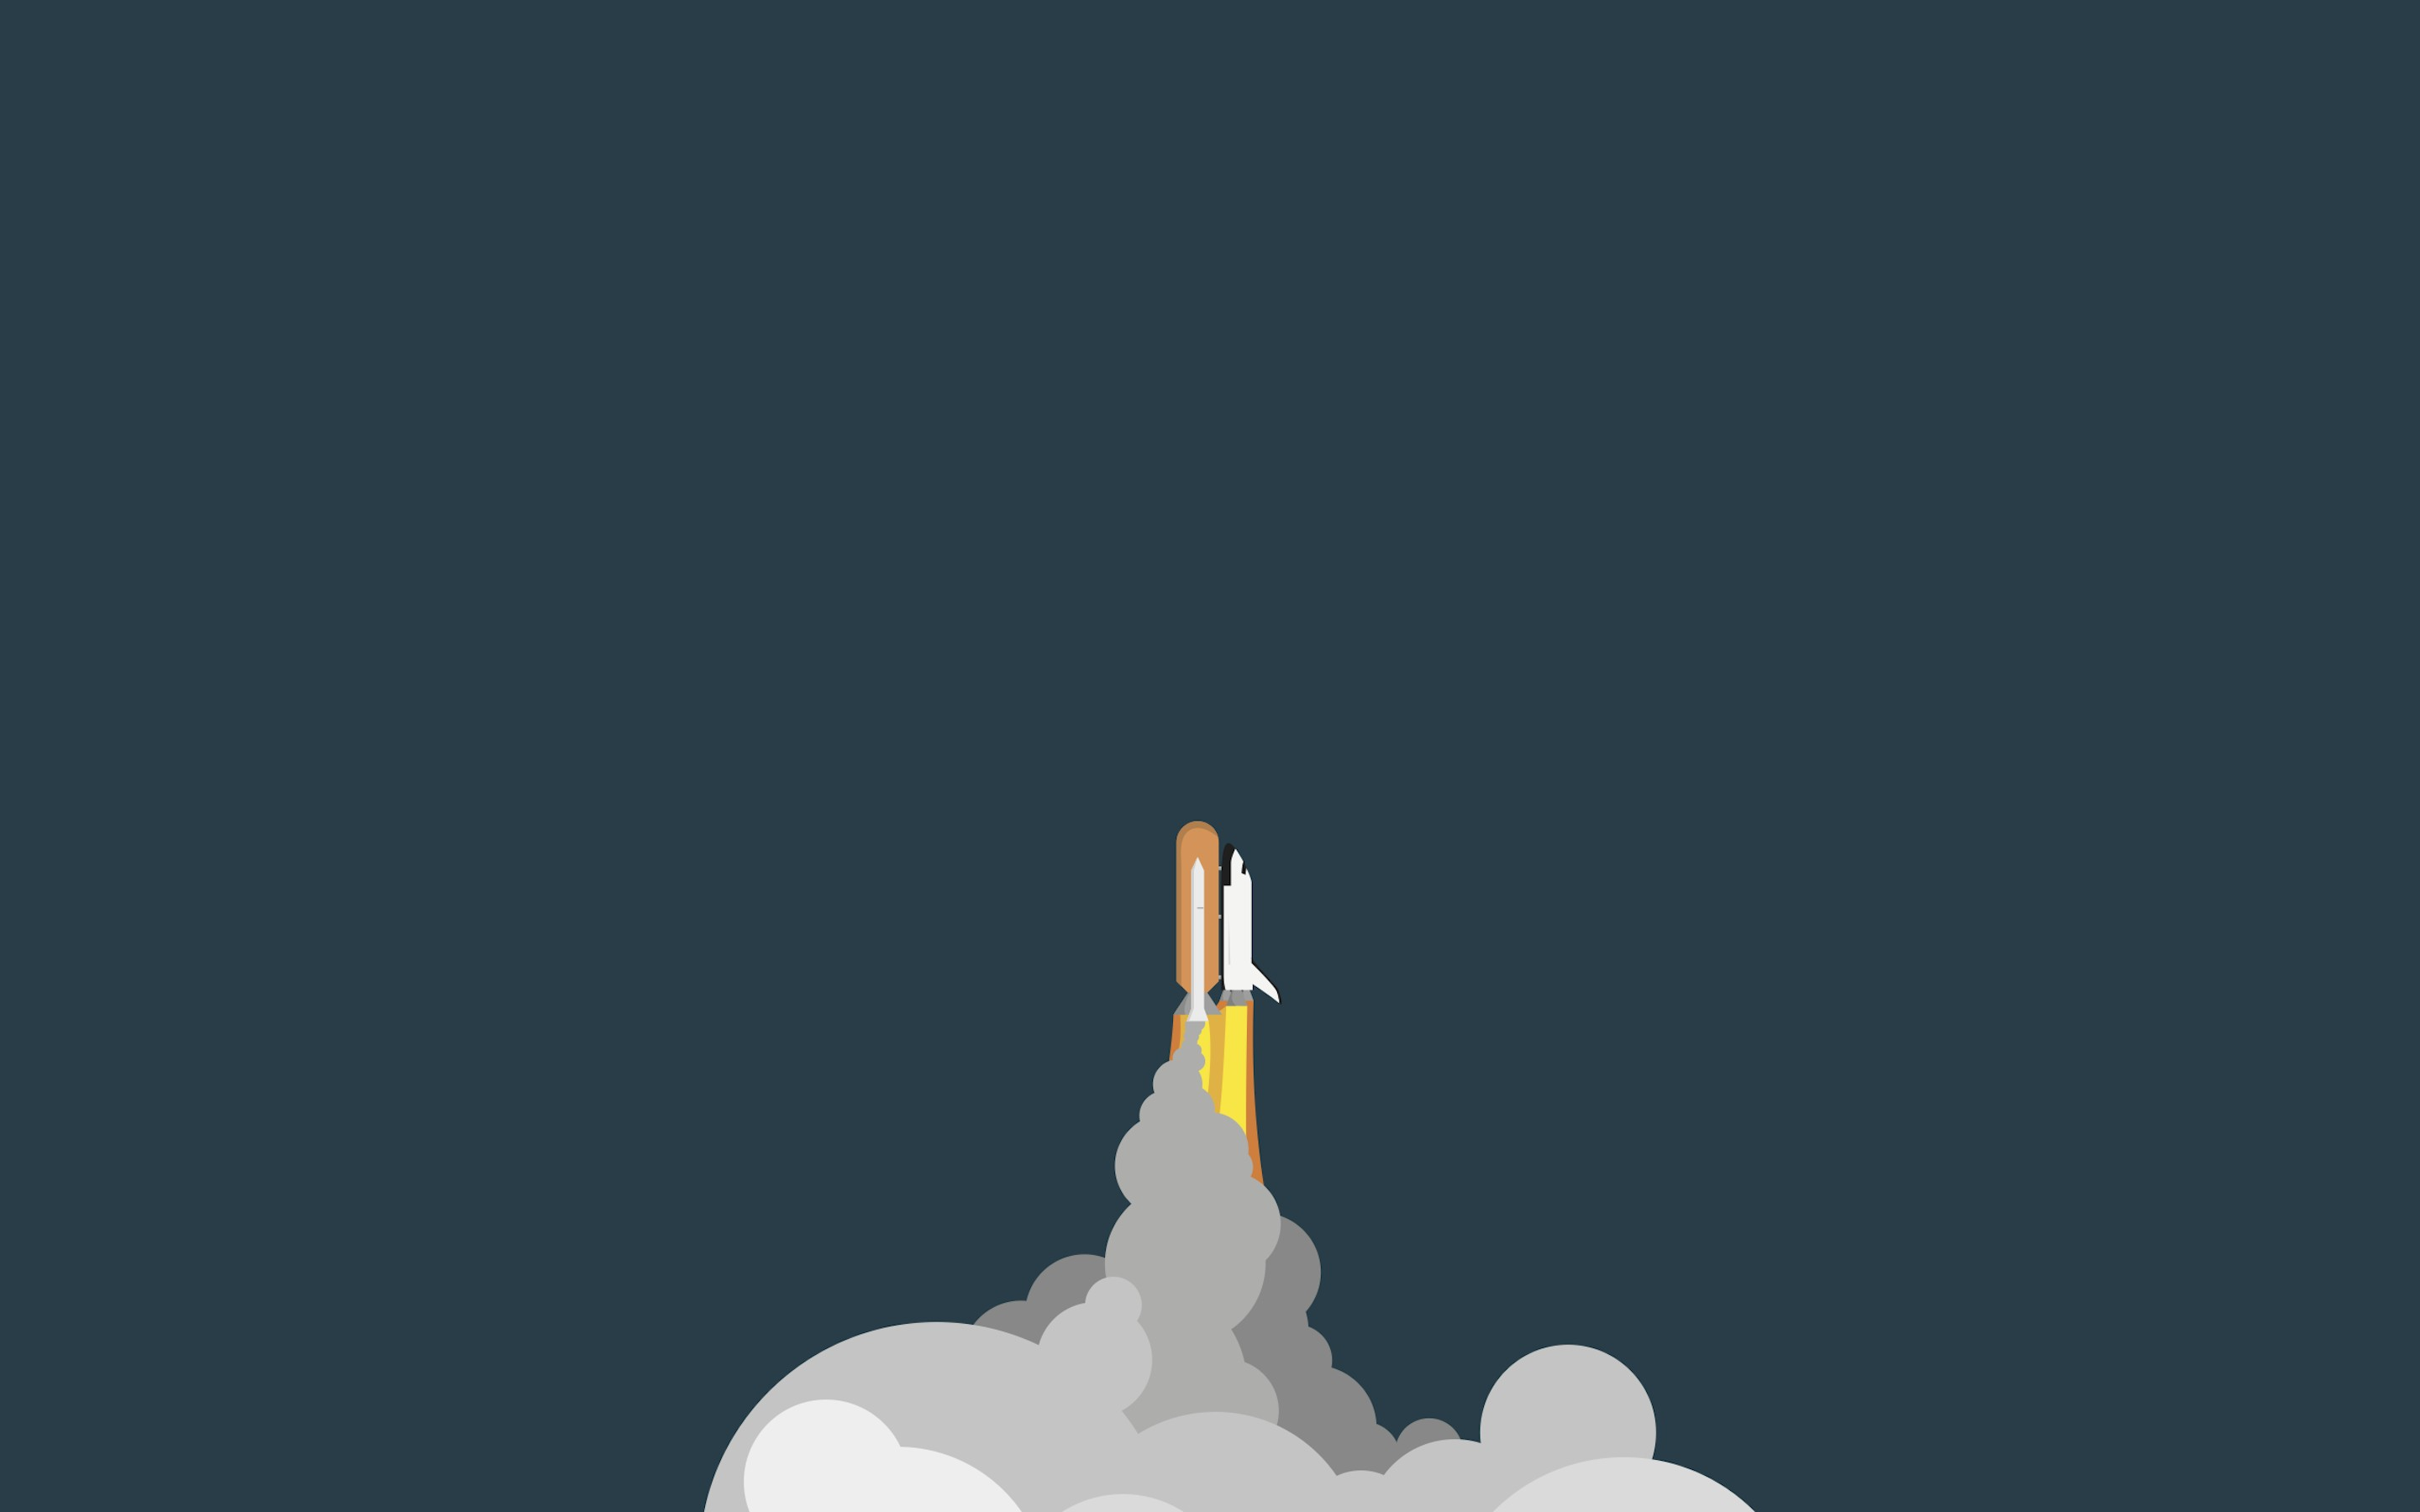 minimalist space rocket wallpaper background 63432